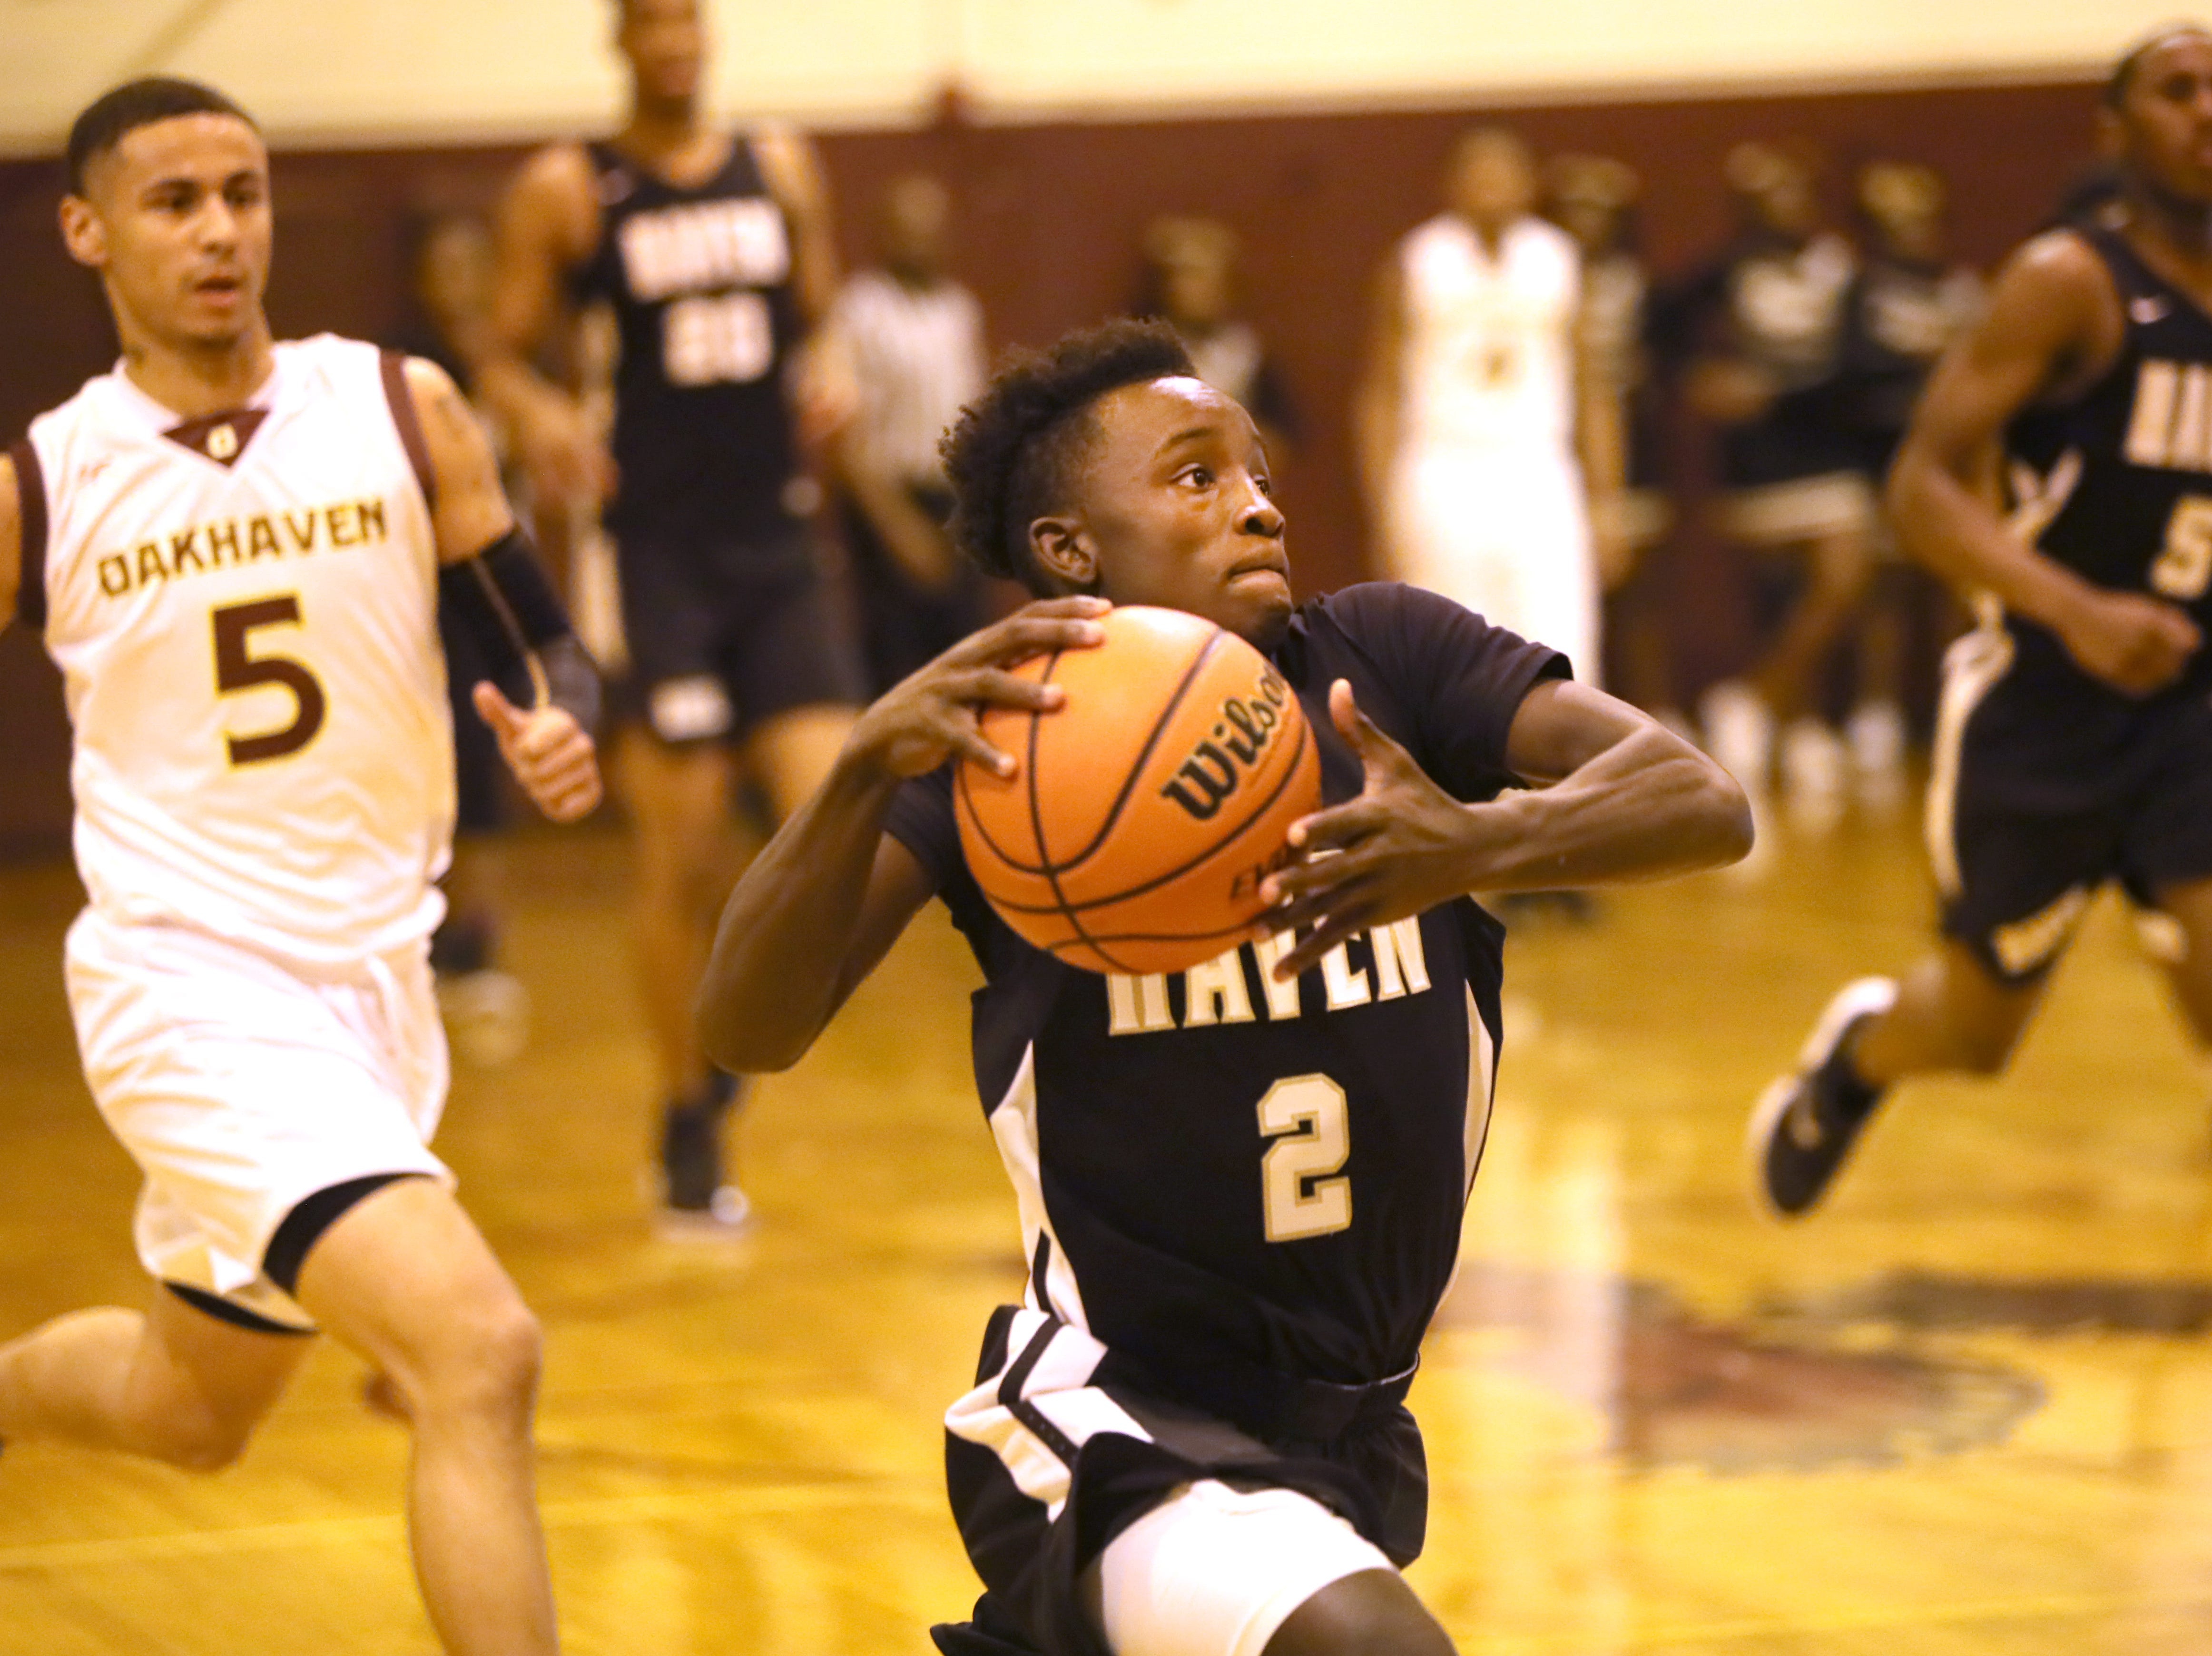 Whitehaven's Kavion McClain drives to the hoop during their game at Oakhaven High School on Thursday, Jan. 10, 2019.